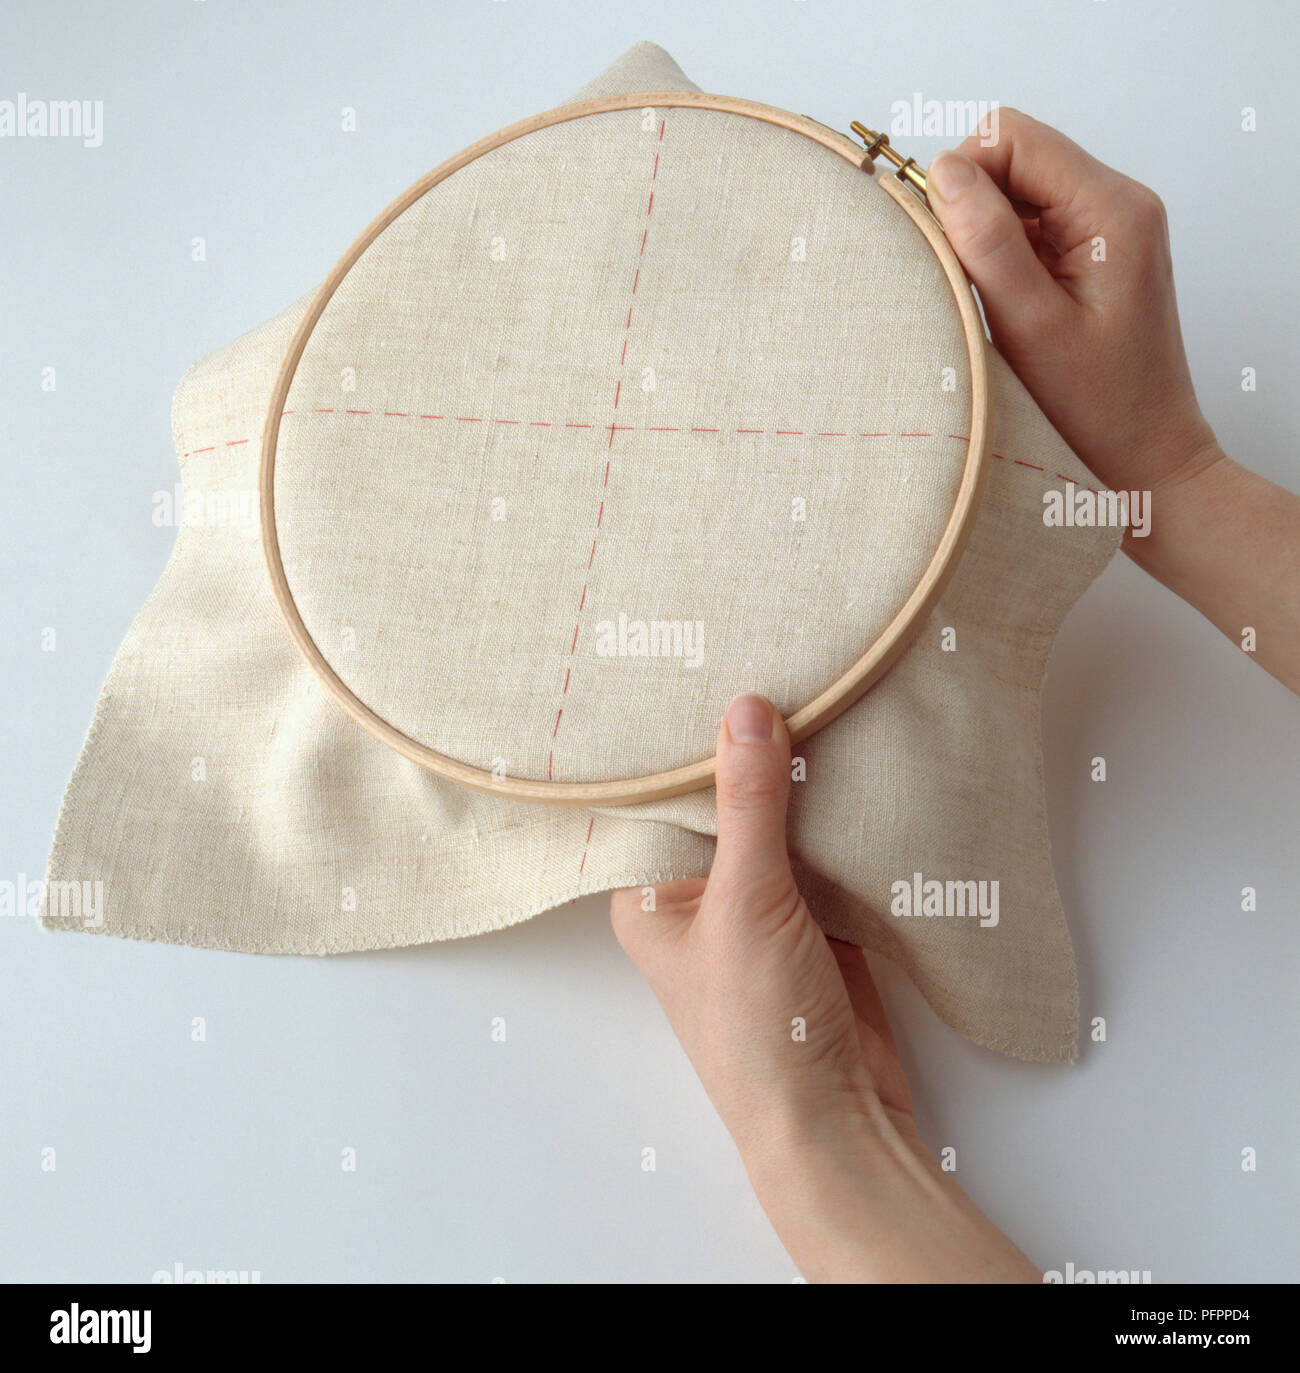 Woman\'s hands mounting fabric on embroidery hoop or tambour frame ...